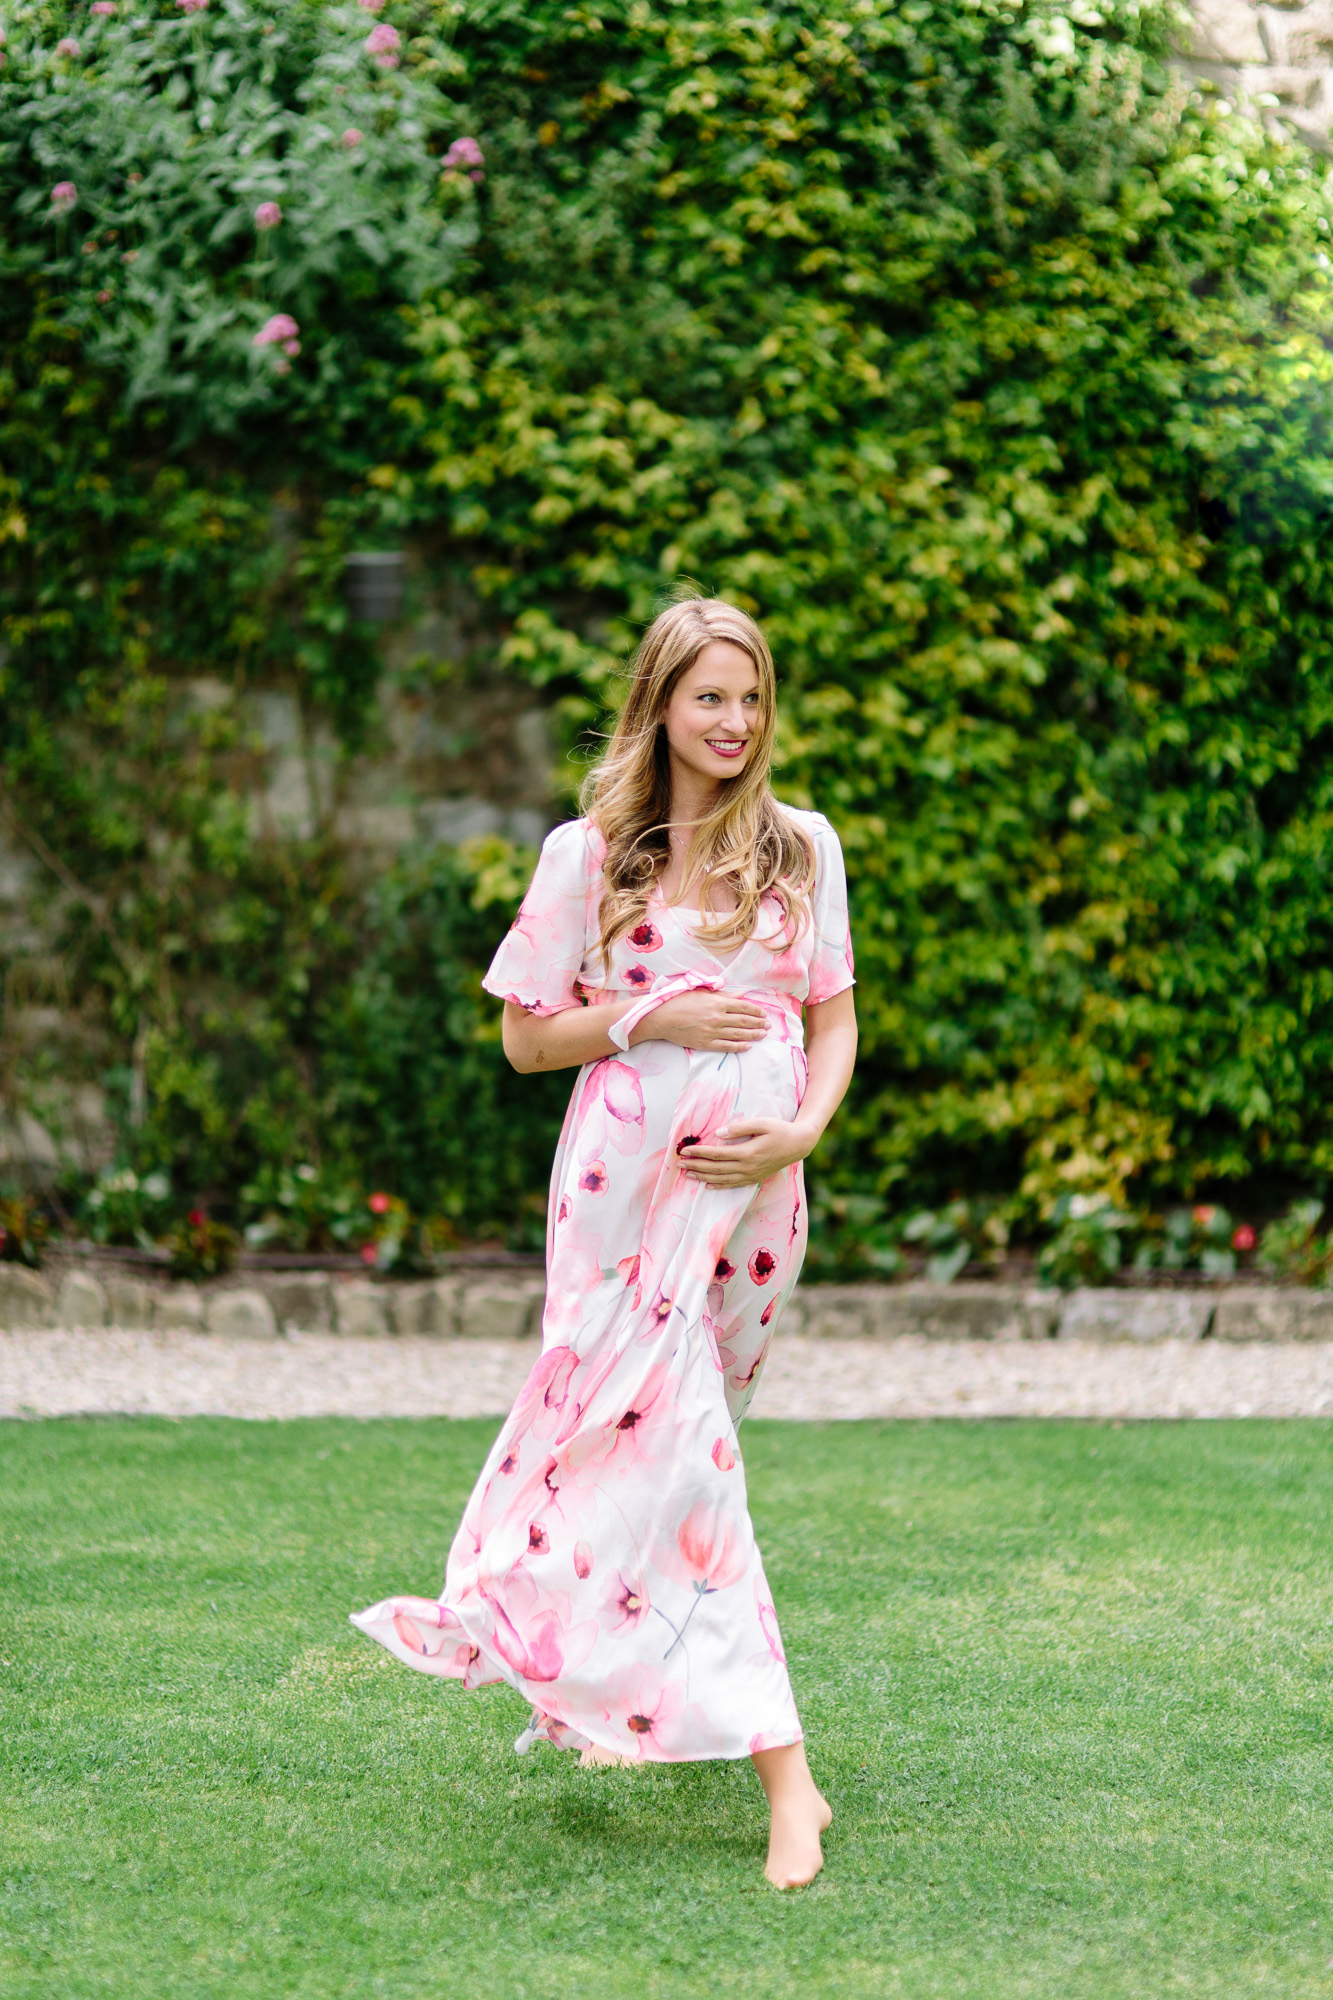 Young pregnant female walking in a garden while holding her pregnant belly in Florence, Italy for a maternity session at Belmond Villa San Michele.